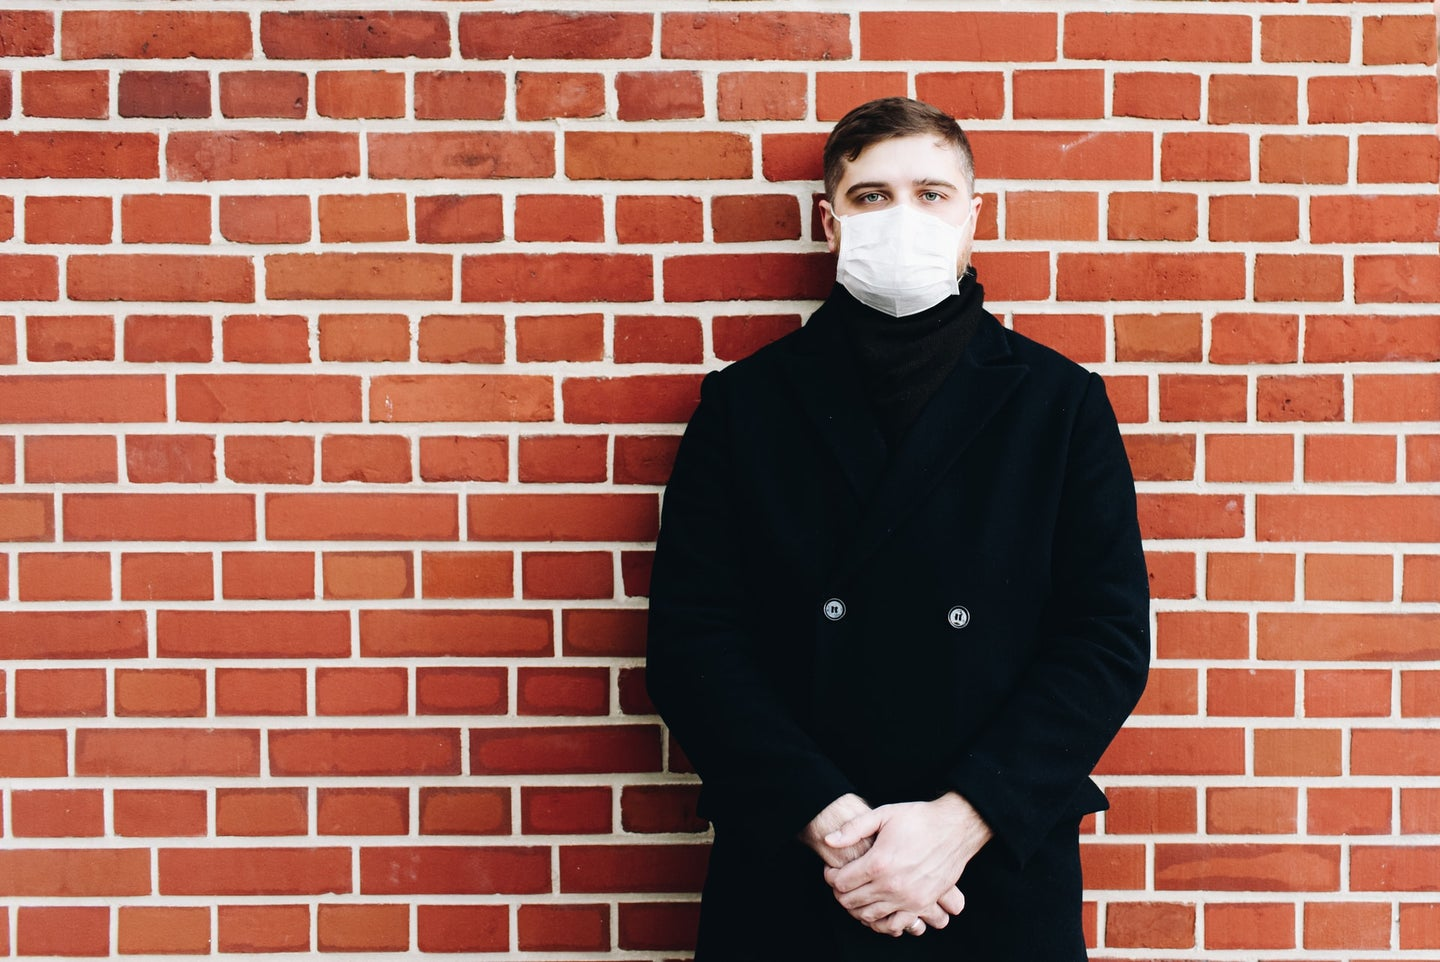 man in mask stands in front of brick wall